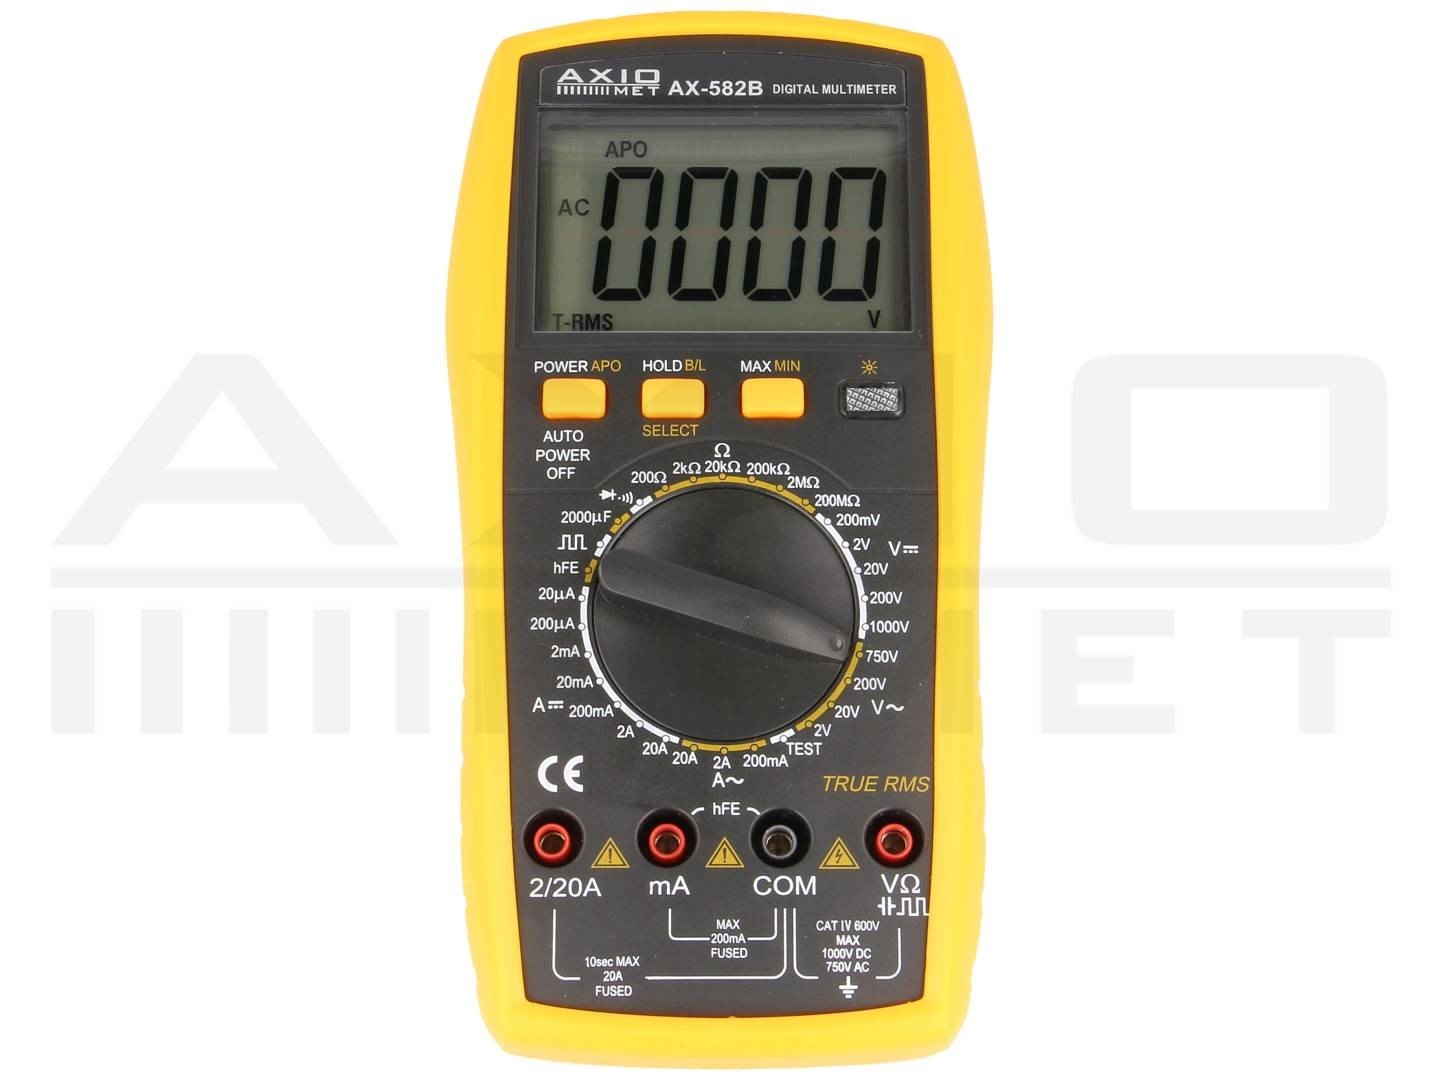 Digitalni mjerni instrument Axiomet AX-582B, multimetar